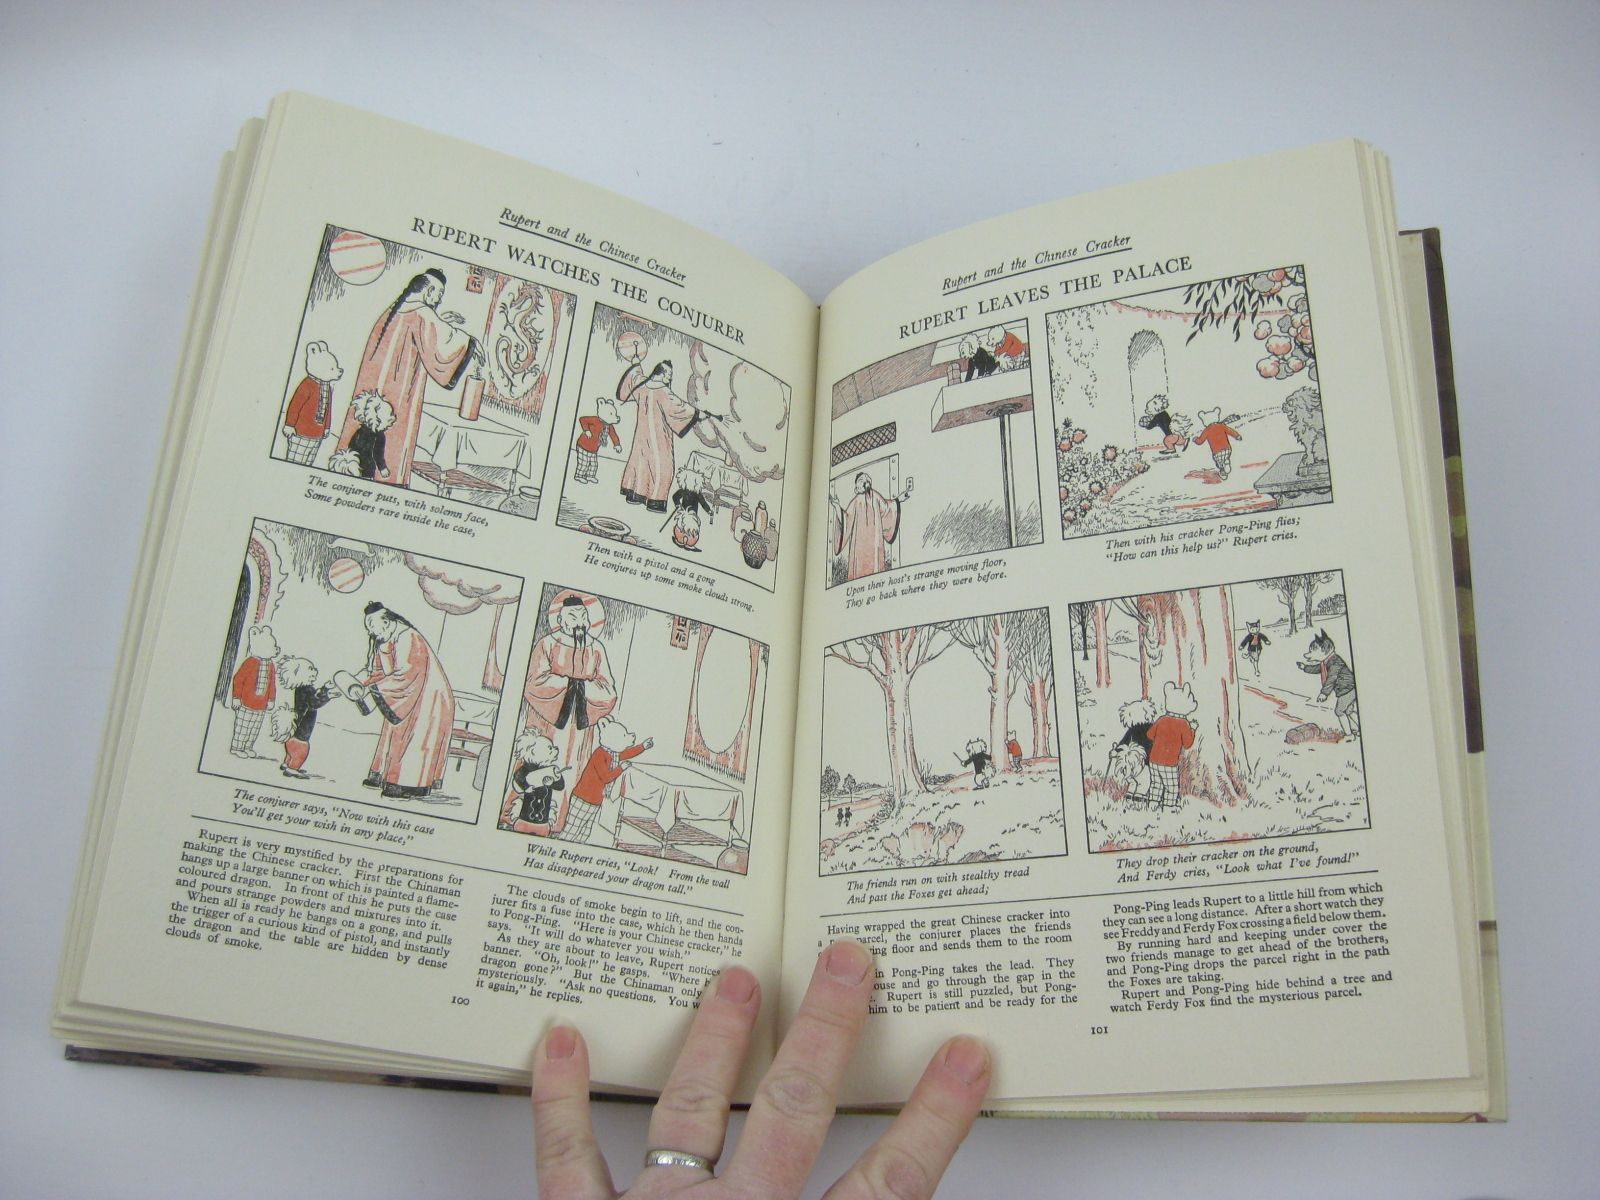 Photo of RUPERT ANNUAL 1937 (FACSIMILE) - MORE ADVENTURES OF RUPERT written by Bestall, Alfred illustrated by Bestall, Alfred published by Express Newspapers Ltd. (STOCK CODE: 1406164)  for sale by Stella & Rose's Books